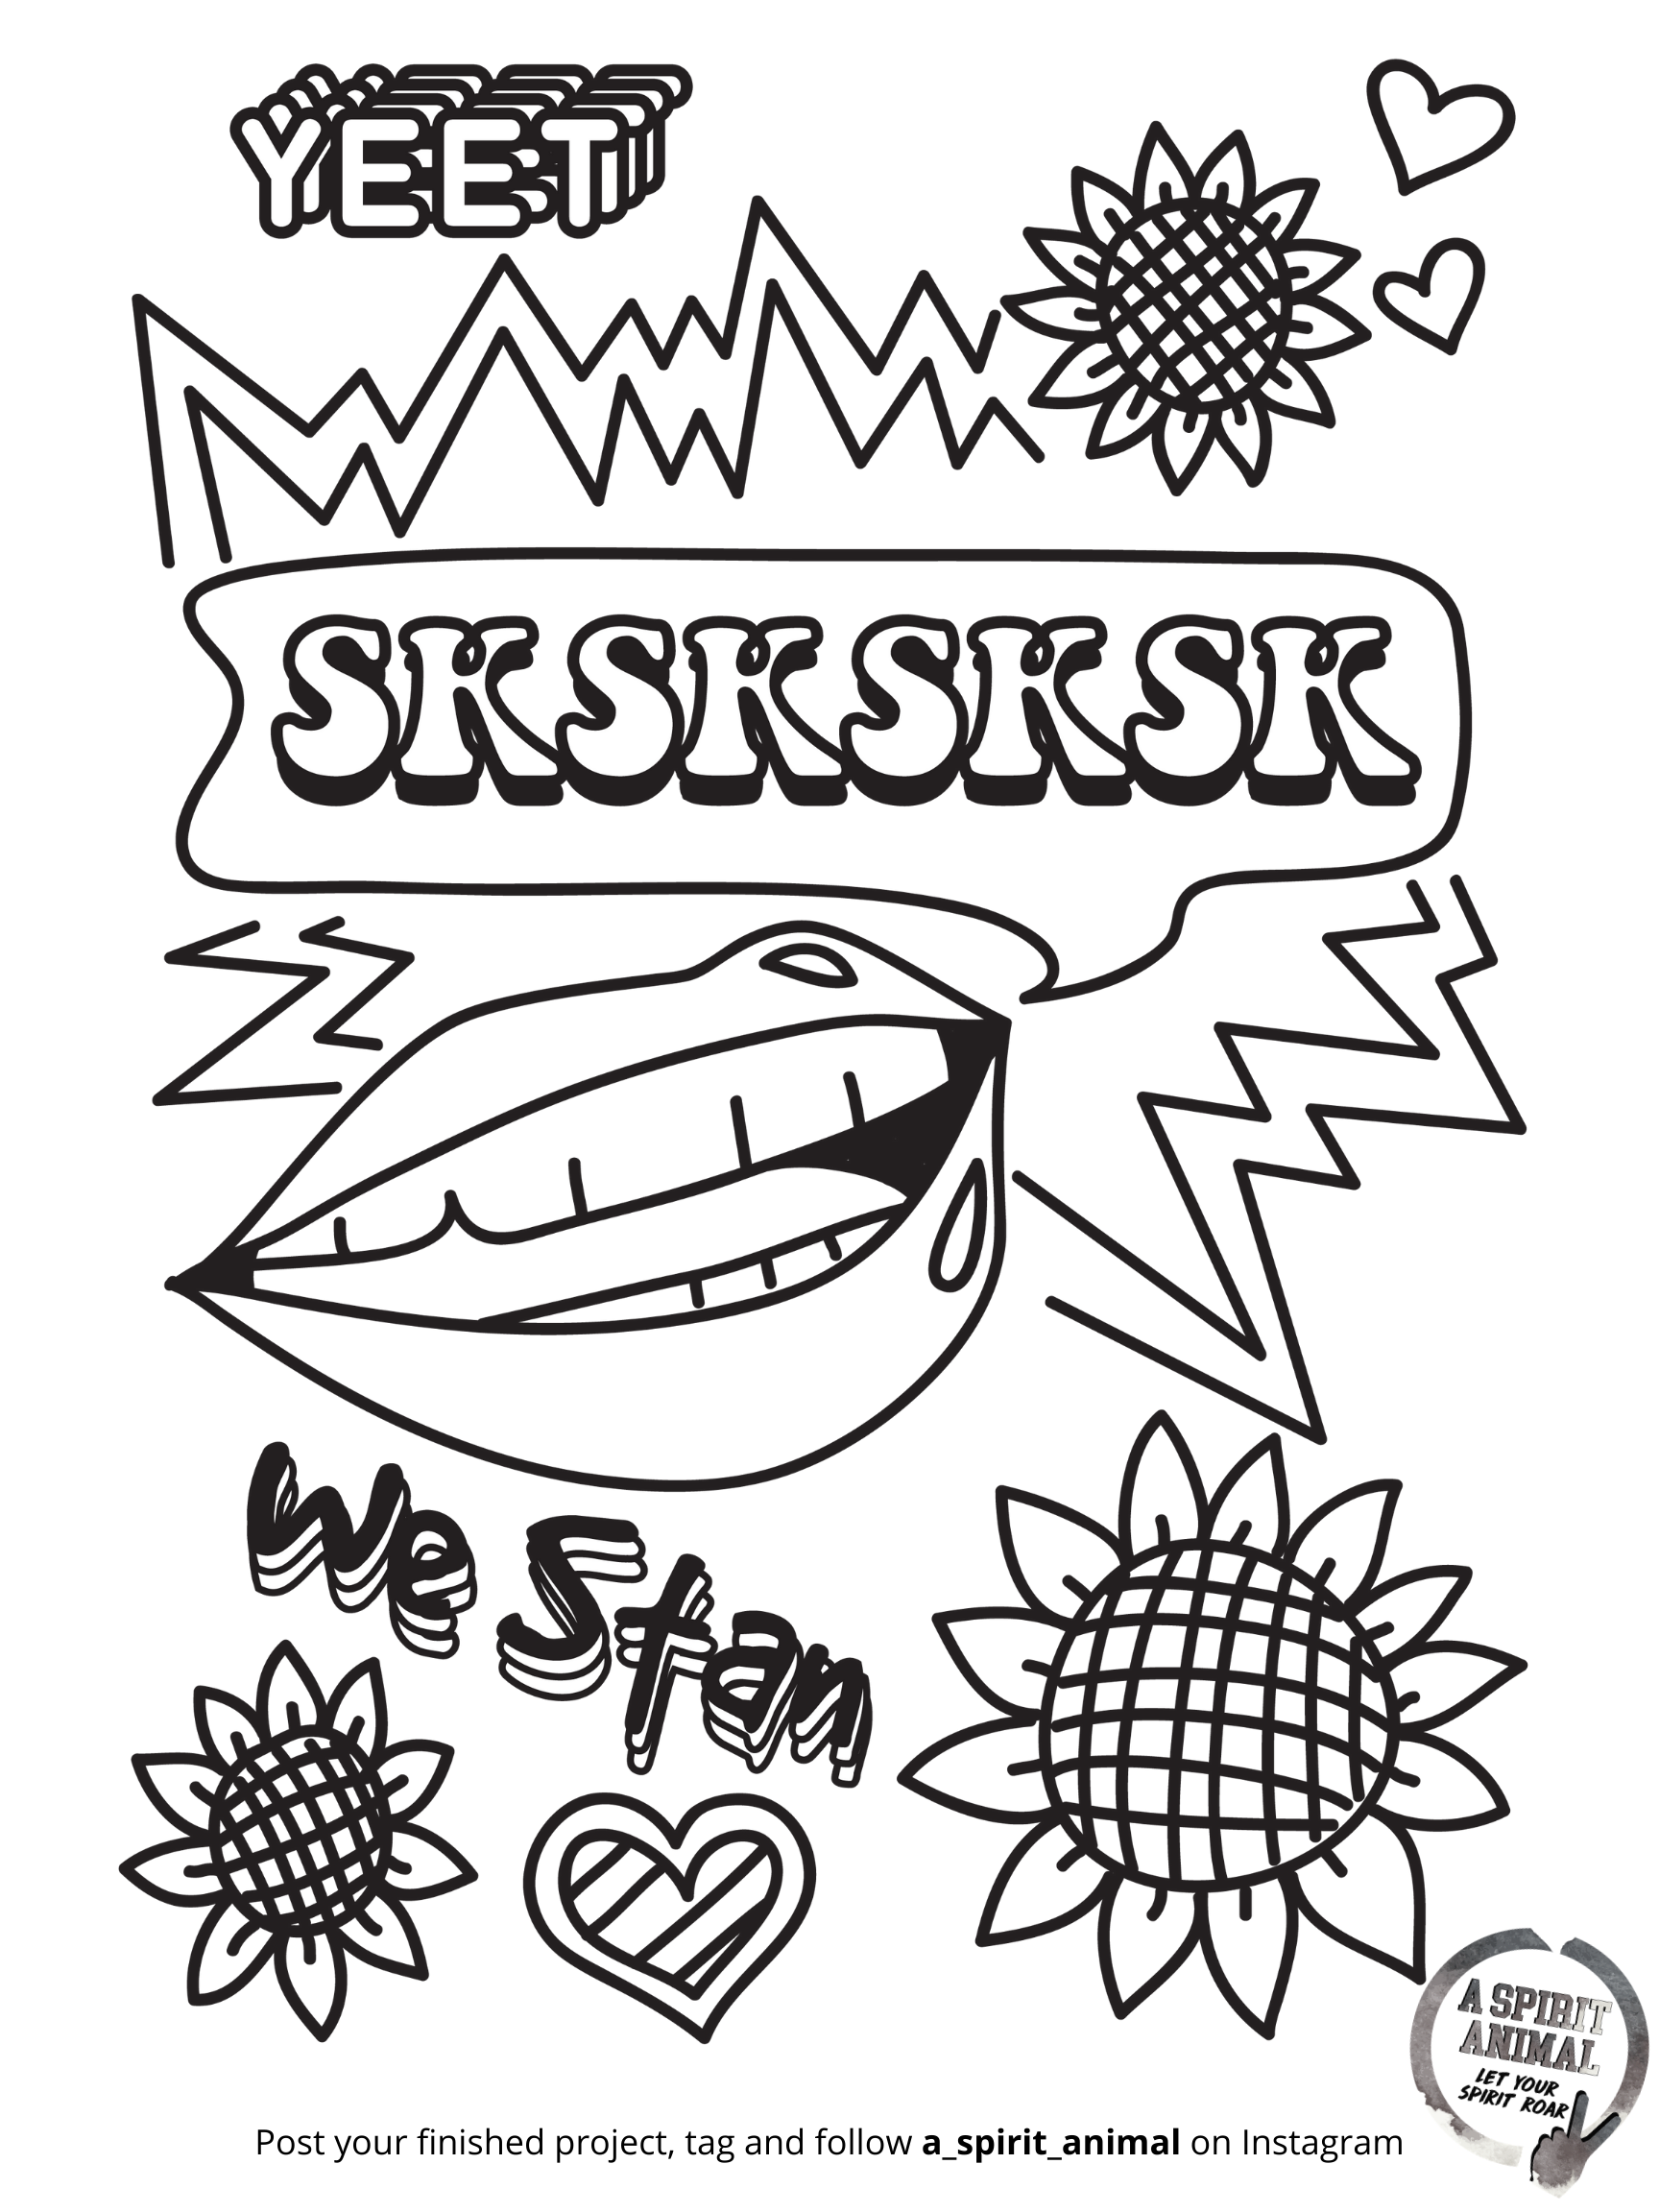 Sksksksk Lips Yeet Vsco Girl A Spirit Animal Free Holiday Activity Coloring Pages Coloring Pages Coloring Pages For Girls Cute Coloring Pages [ 2304 x 1728 Pixel ]